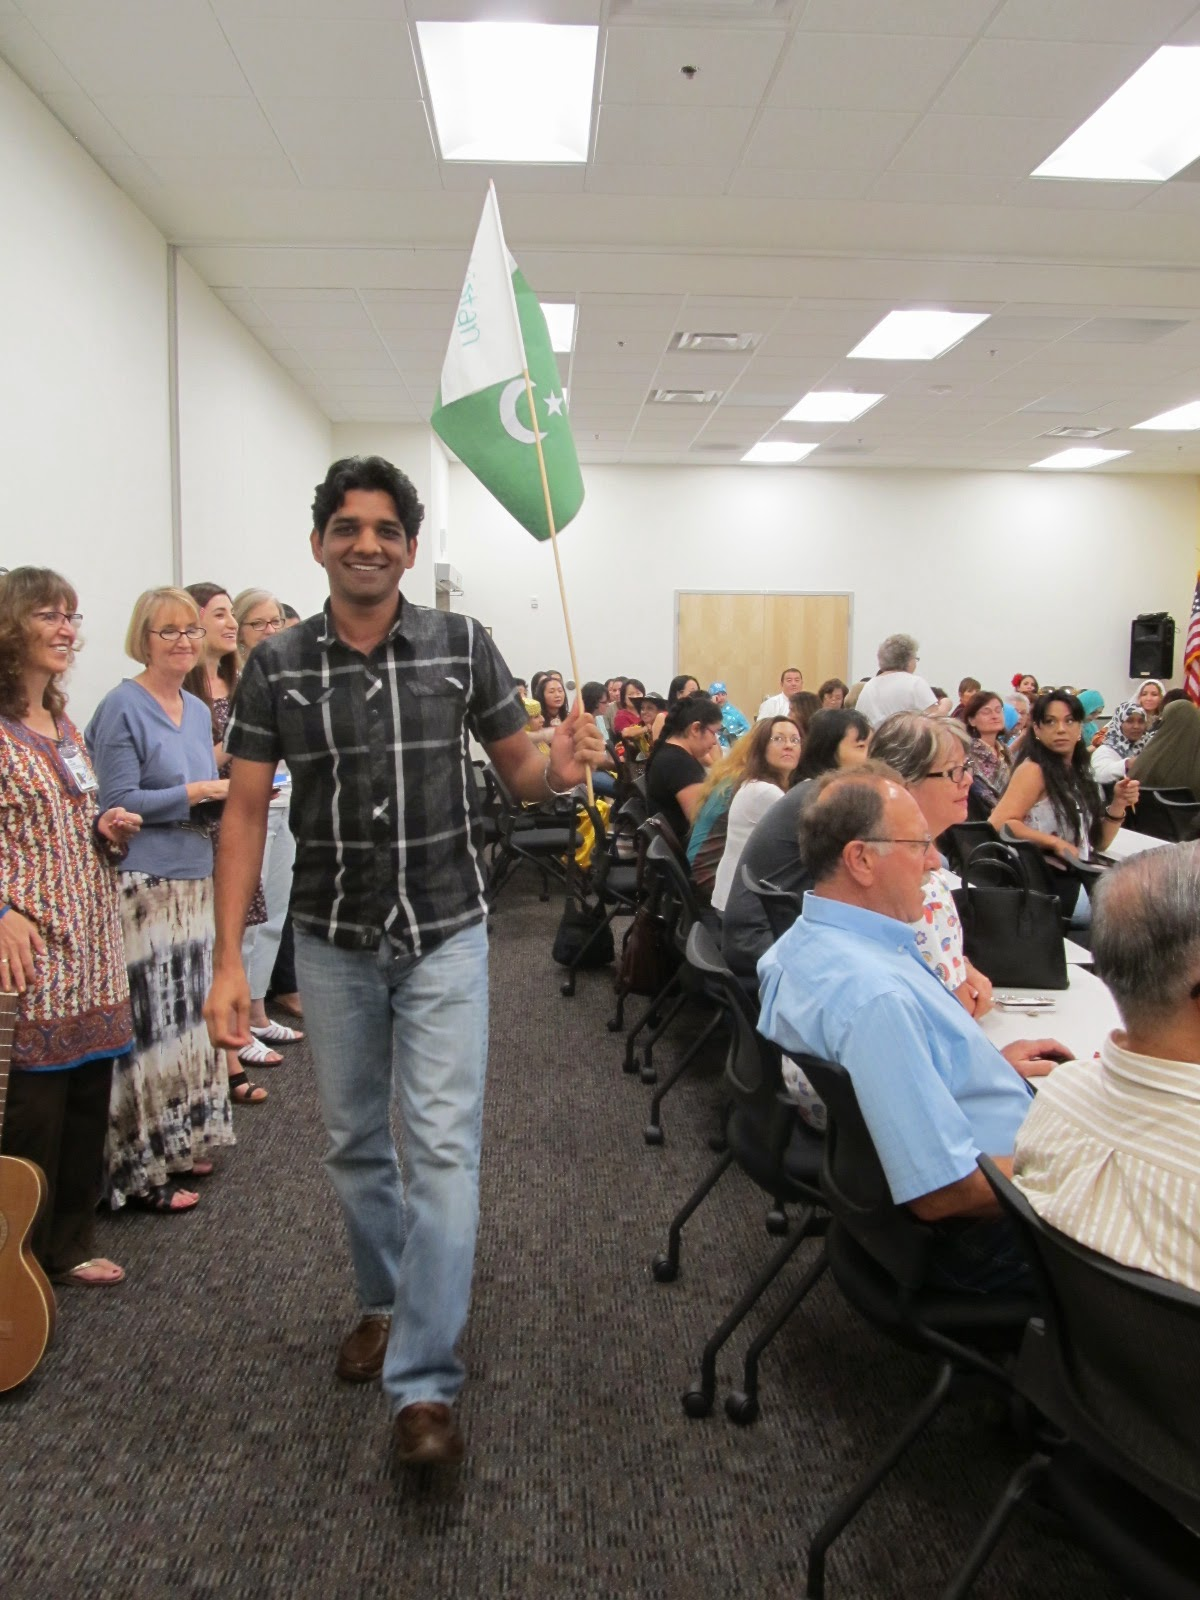 Image of attendee holding a flag.